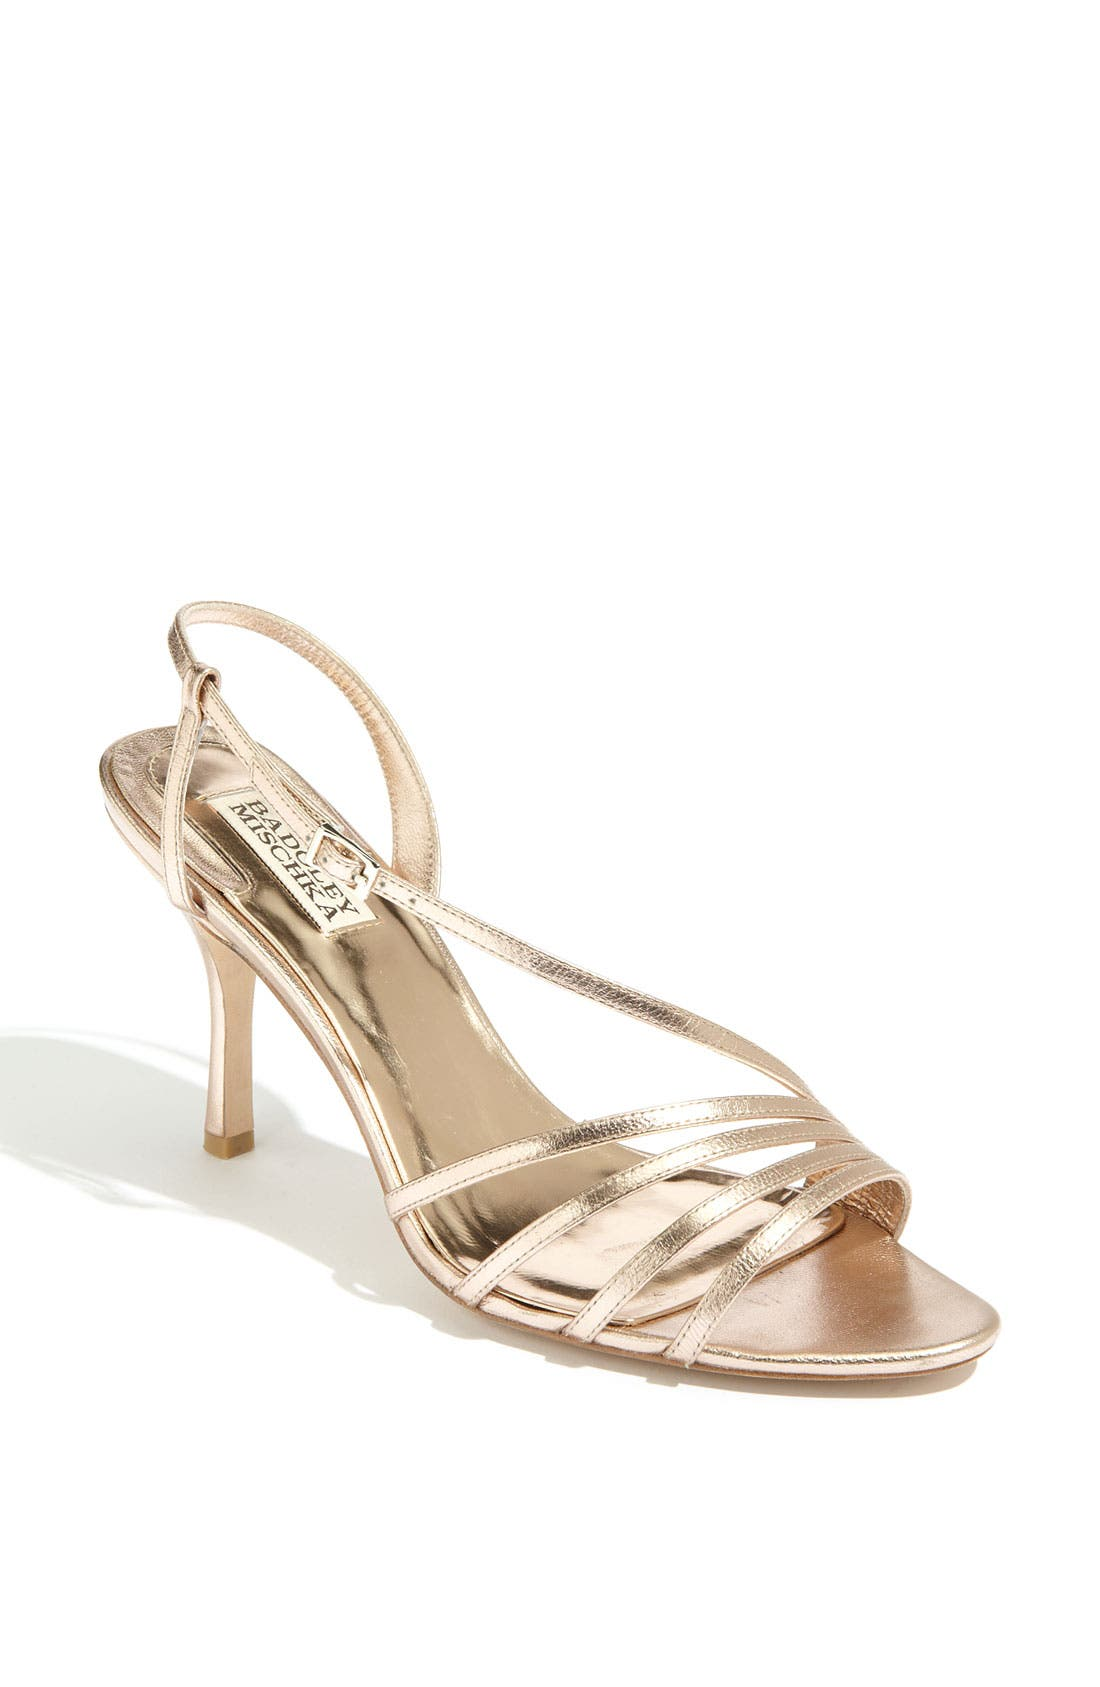 Main Image - Badgley Mischka 'Guinevere' Sandal